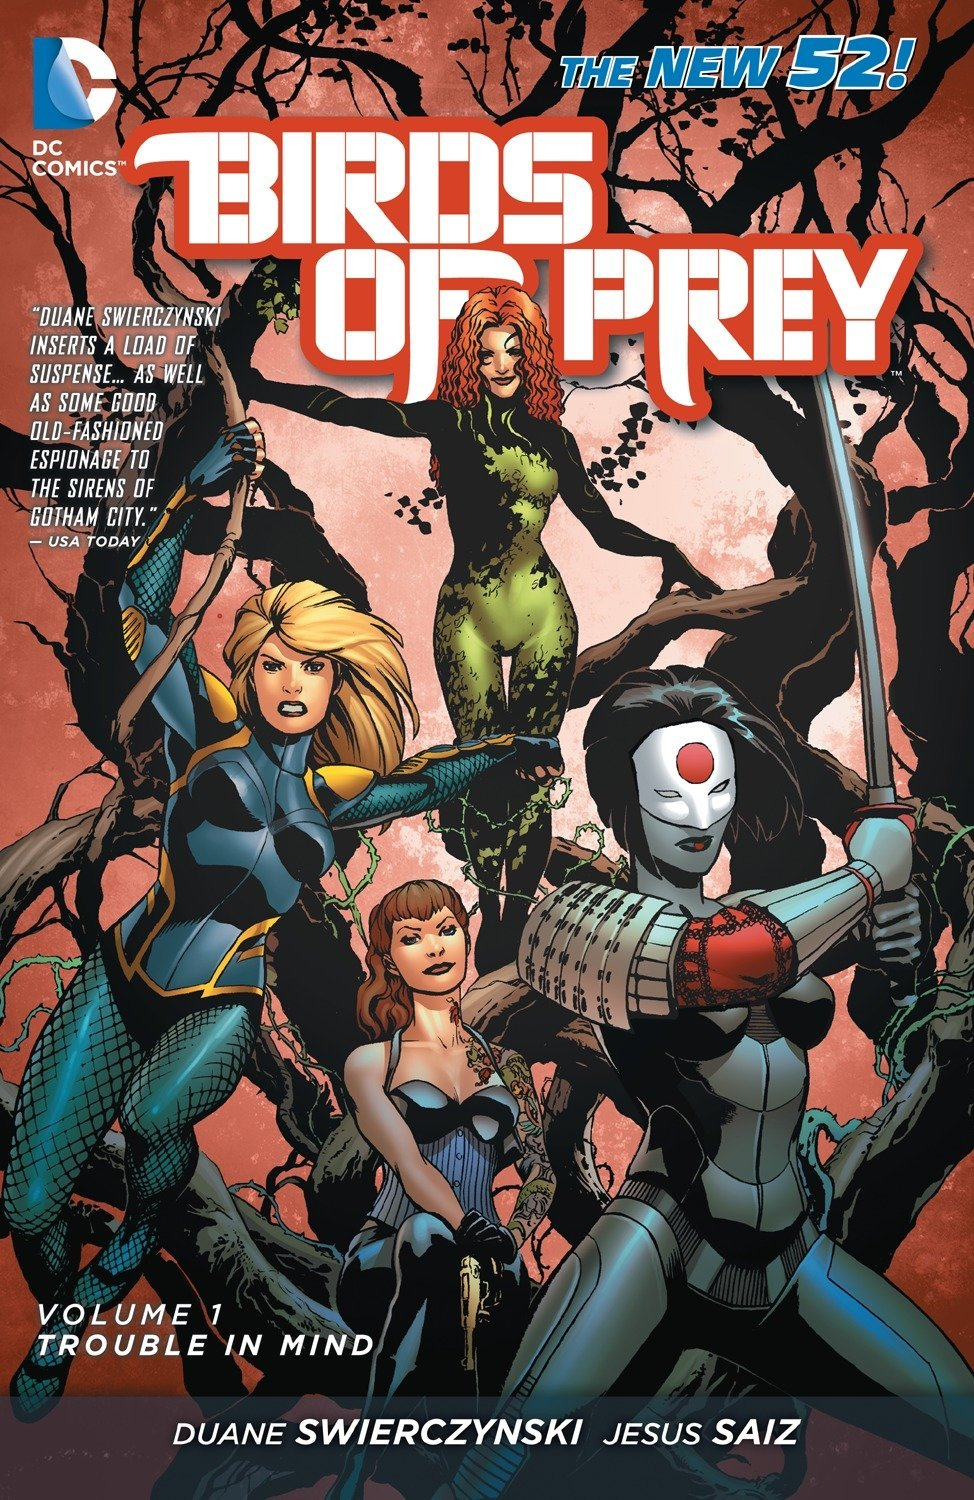 Birds Of Prey Vol 1 Trouble In Mind The New 52 Swierczynski Duane Various 8601400568637 Amazon Com Books